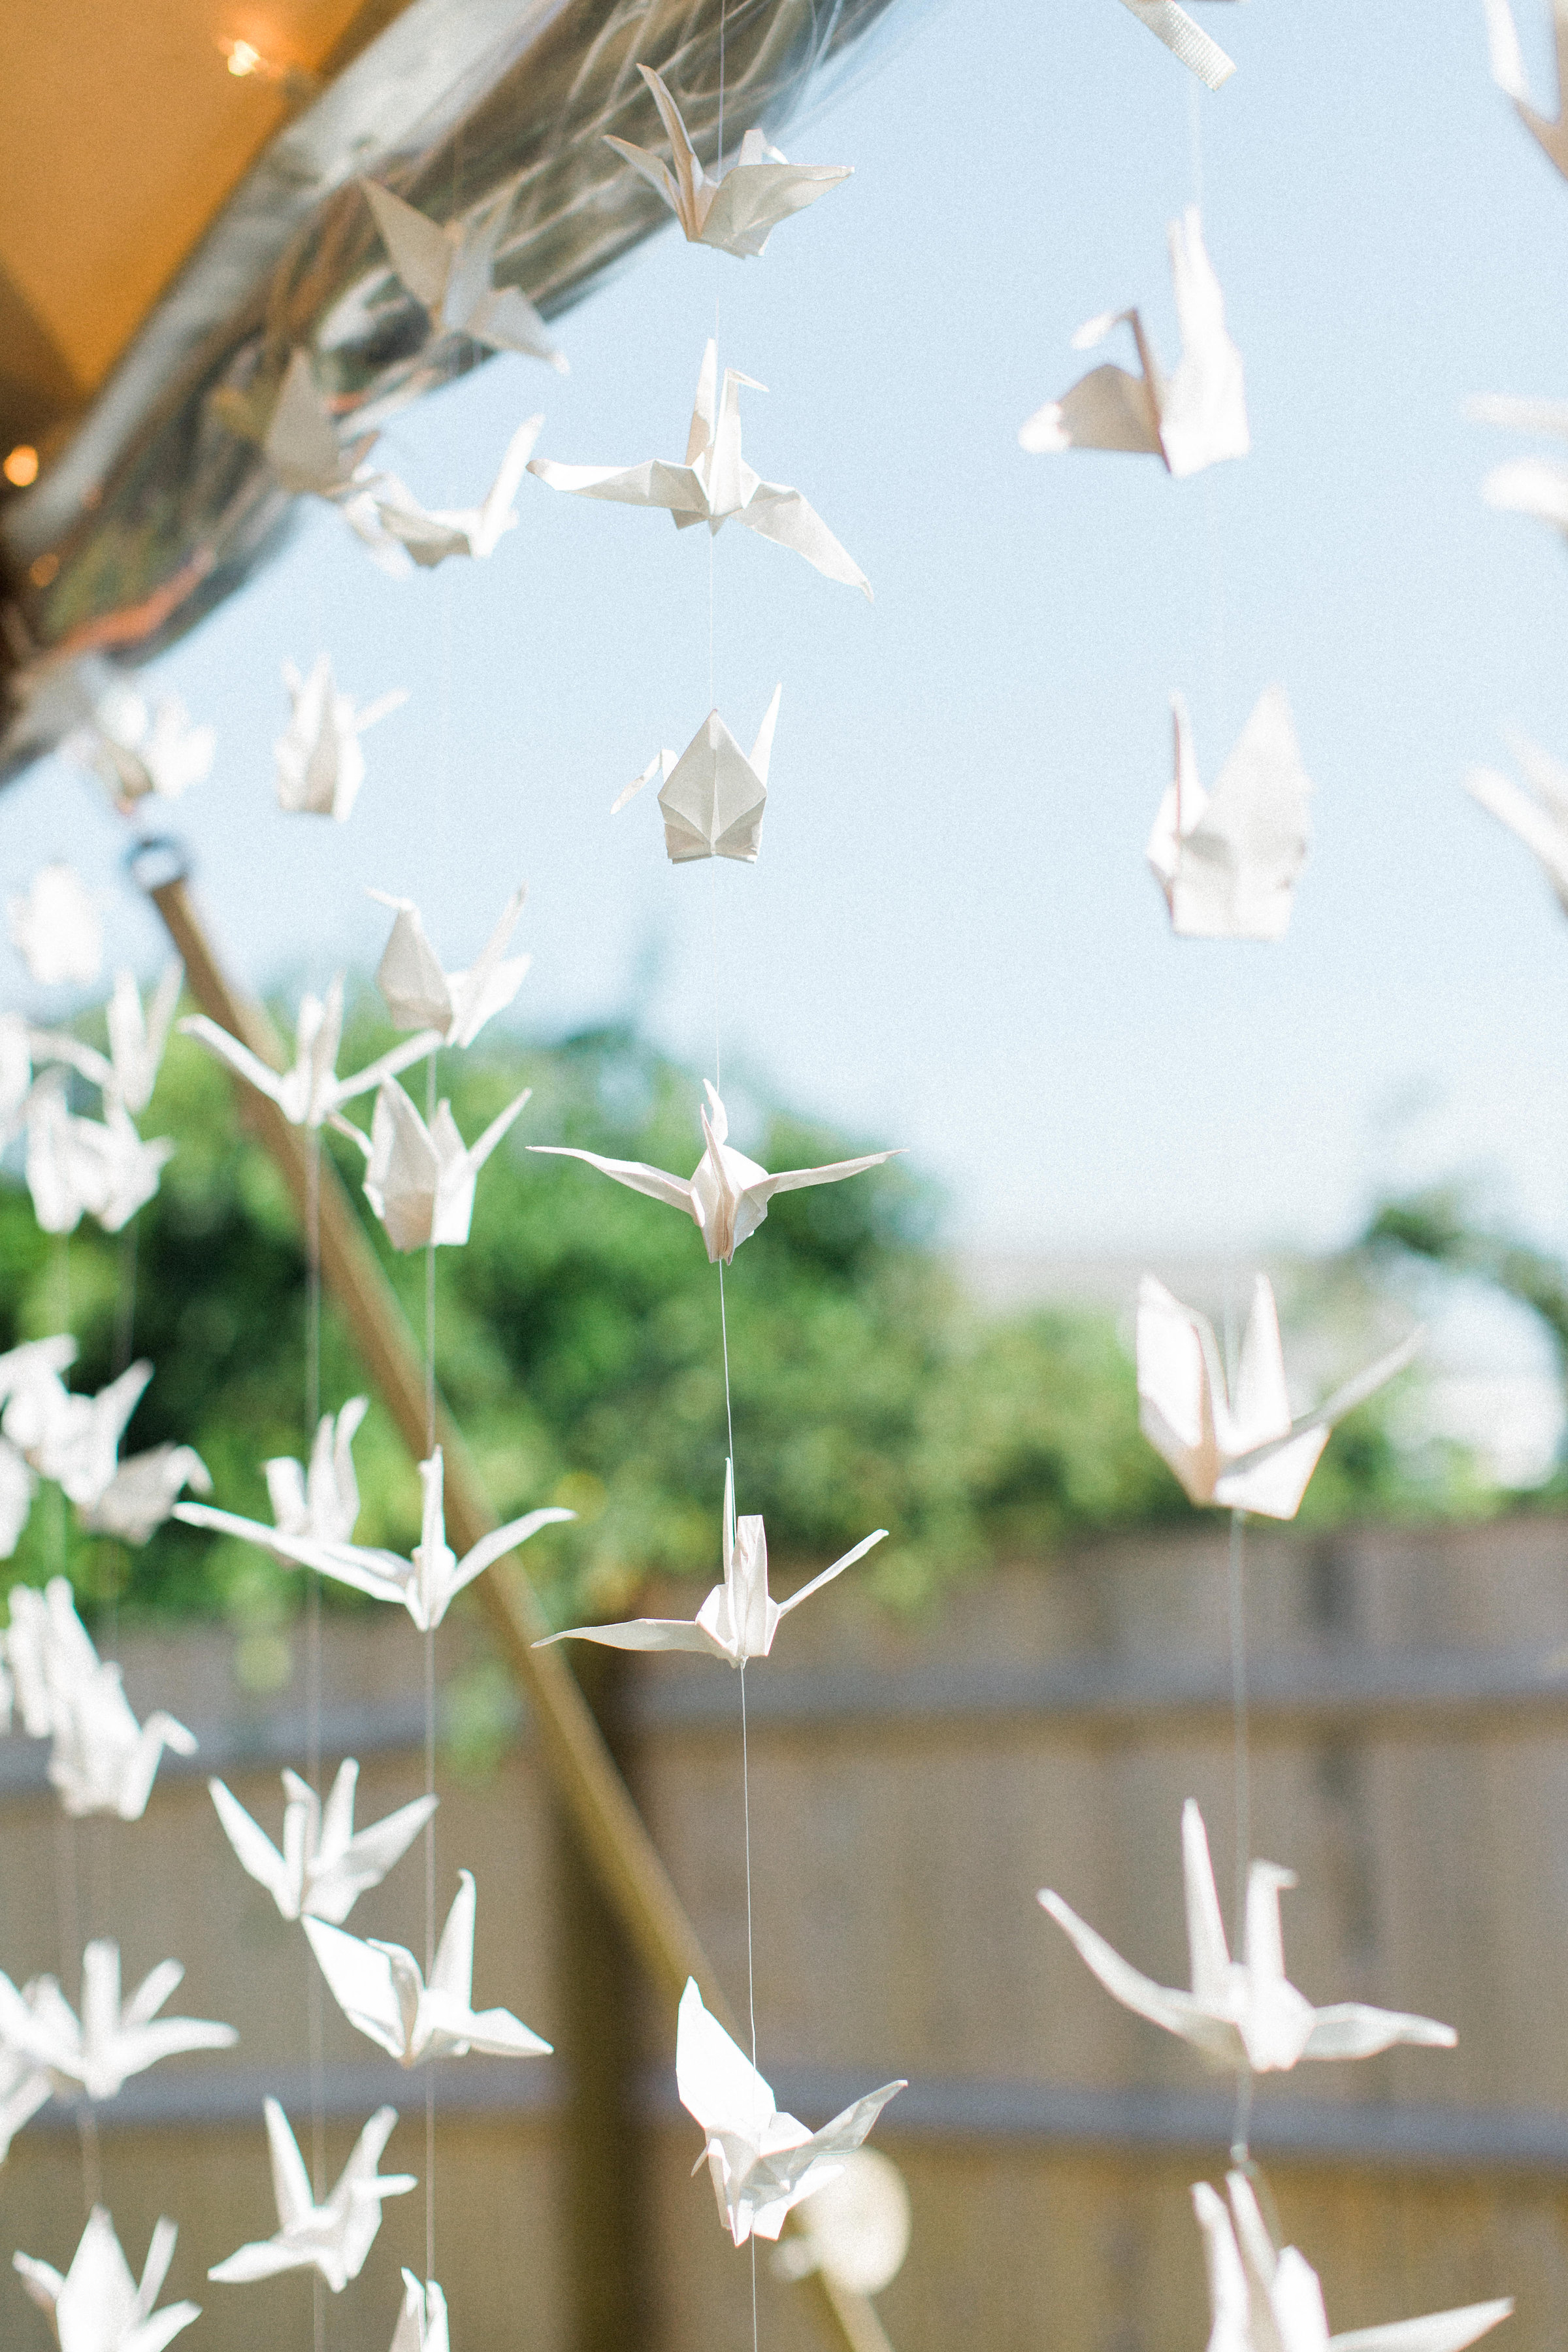 1000 origami paper cranes were strung within the tent for good luck- a nod to the Groom's time stationed in Japan